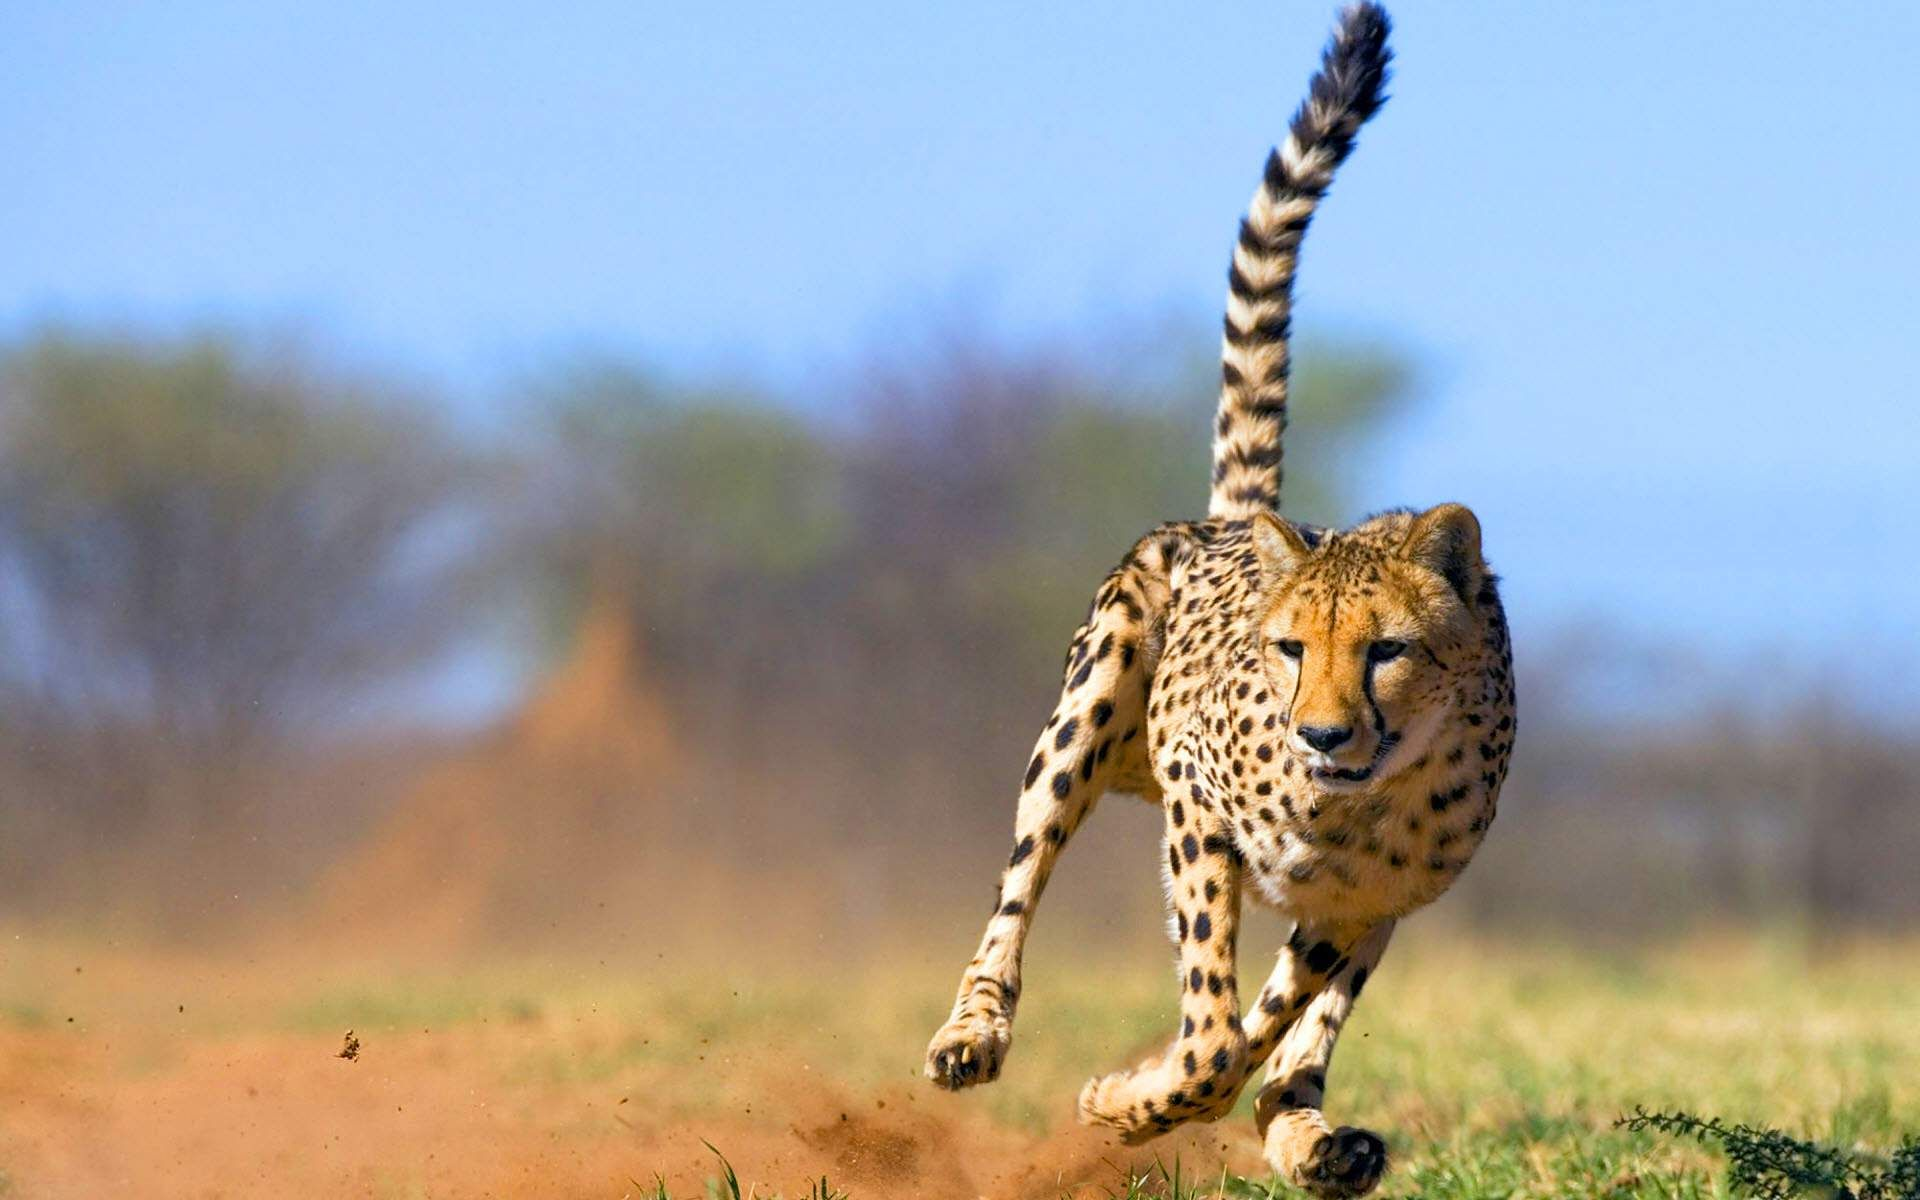 Cheetah Hd Free Wallpaper Free Hd Wallpapers For Pc Cheetah Pictures Cheetah Background Cheetah Wallpaper